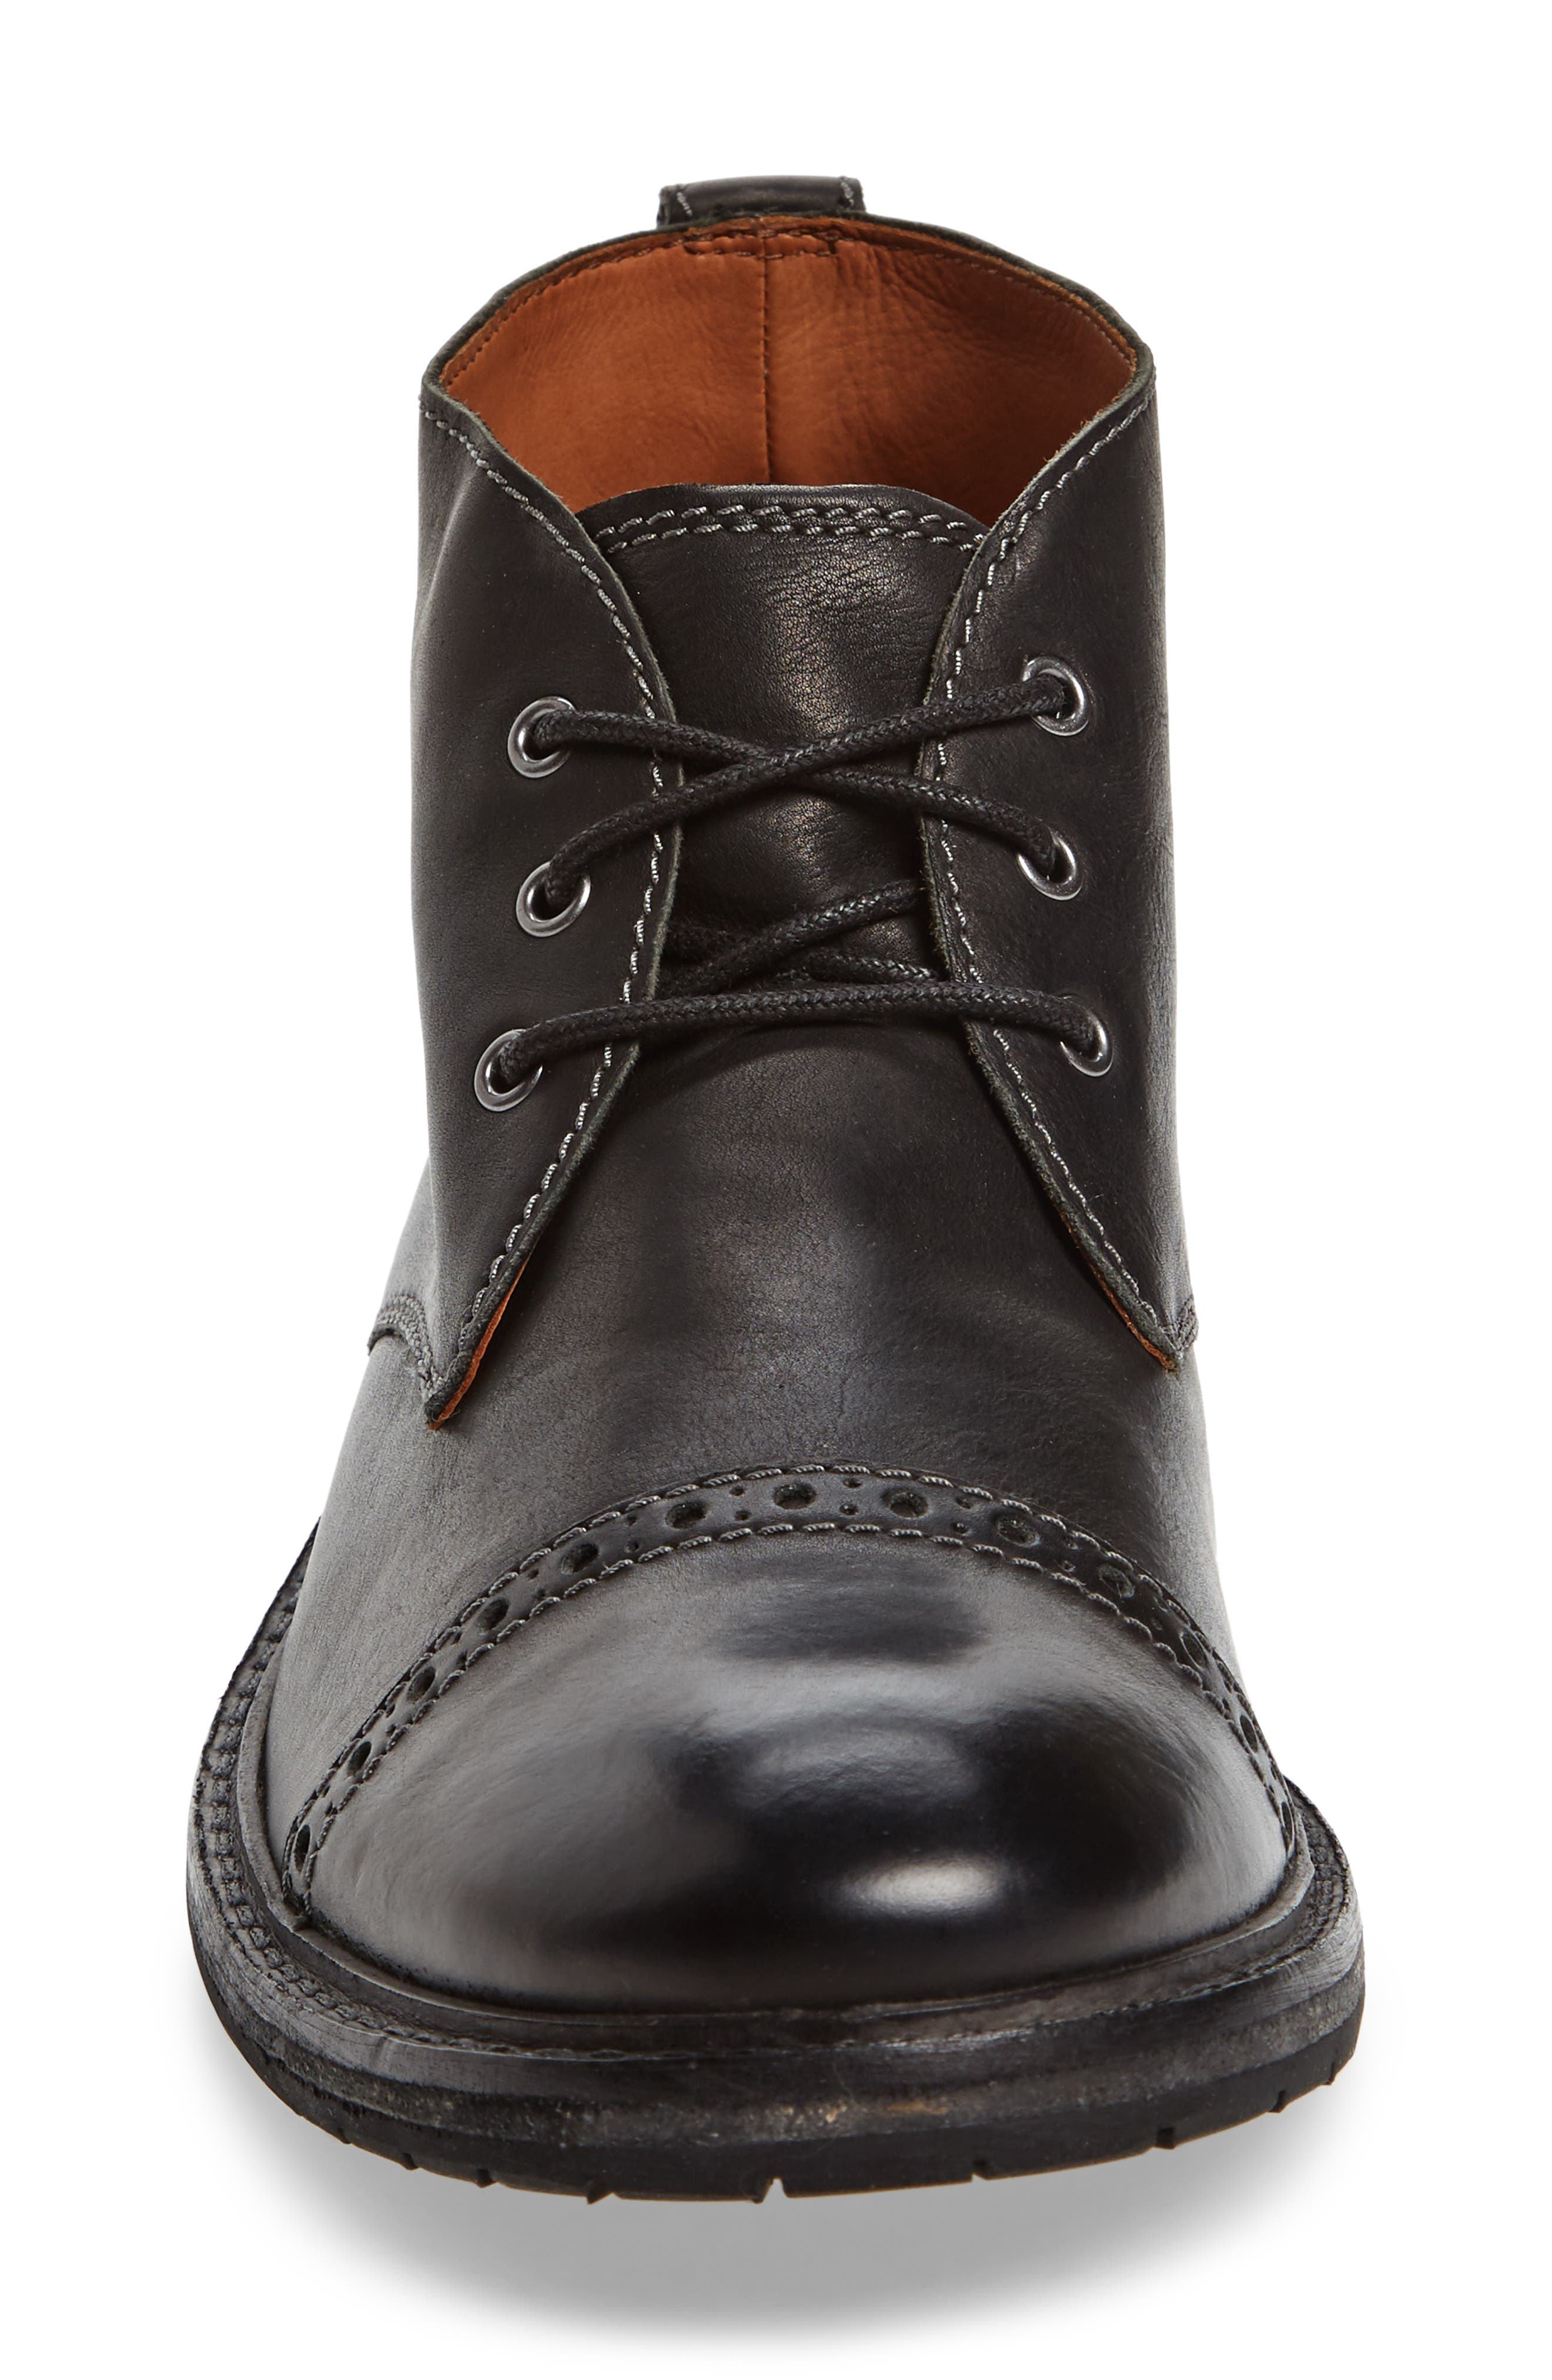 Clarkdale Water Resistant Chukka Boot,                             Alternate thumbnail 4, color,                             003